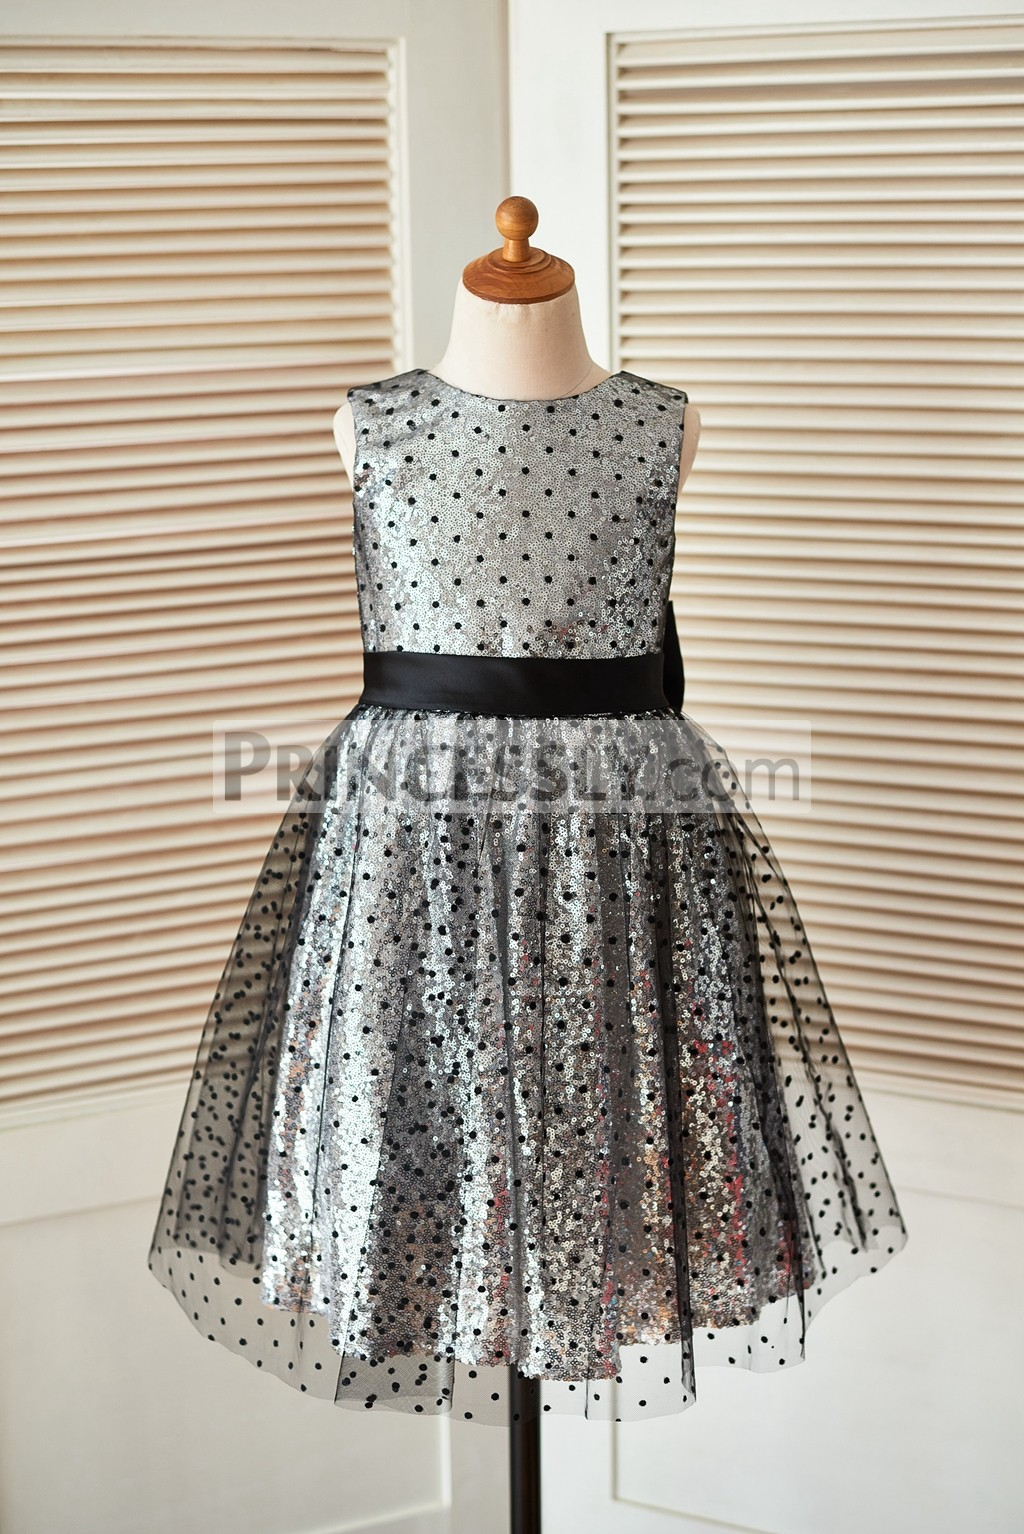 62970c64d8 Silver sequin black tulle flower girl dress · Black polka dot fully lined  wedding baby girl dress